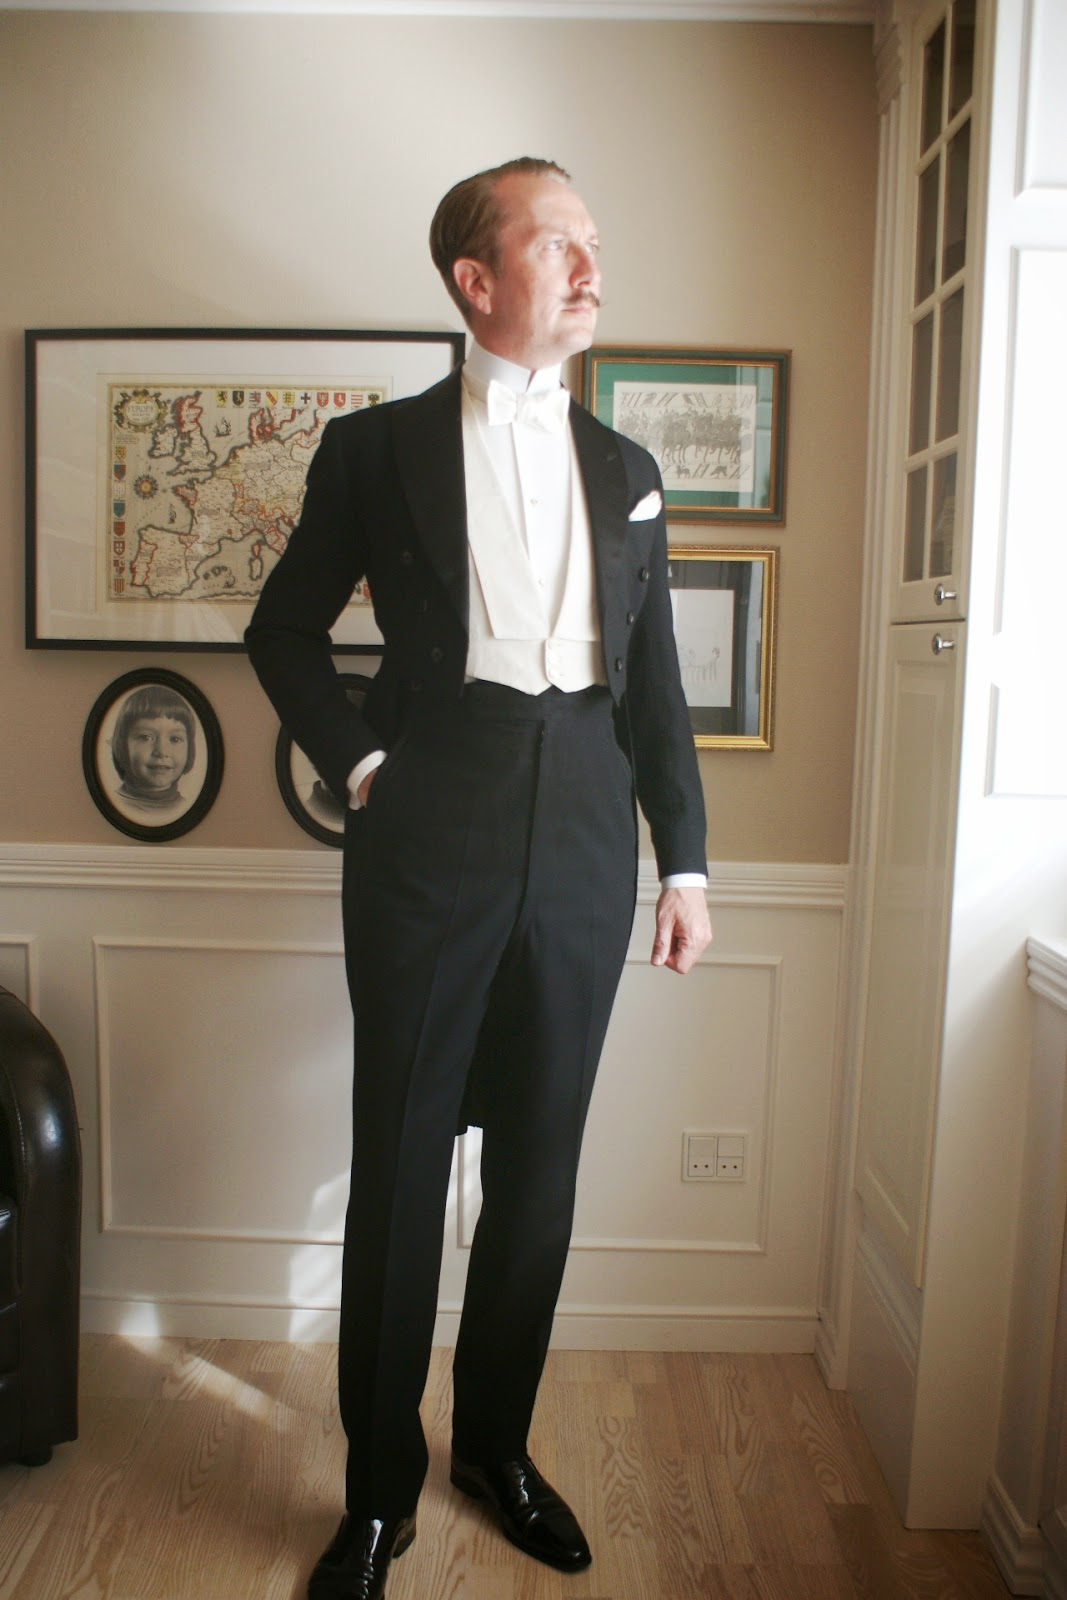 White bow tie from Drake's; Imperial collar from Darcy Clothing; and a ... Tuxedo Shirt